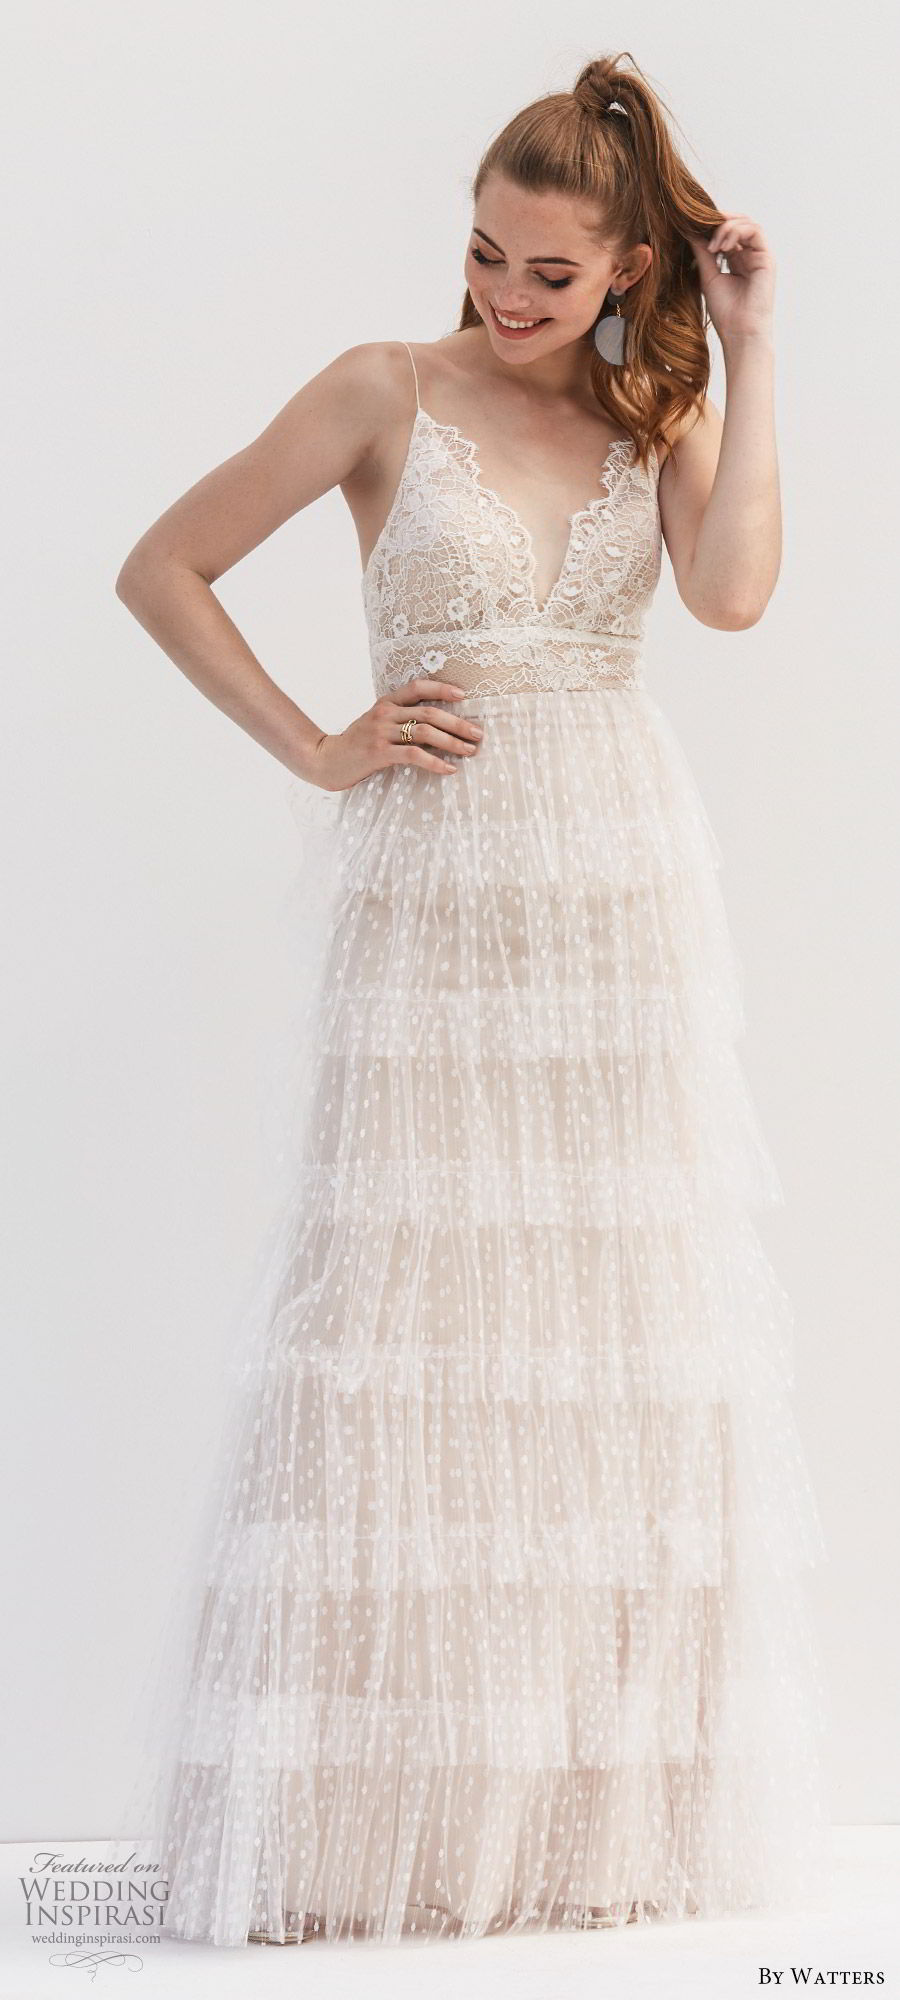 by watters 2020 bridal sleeveless thin straps v neck lace a line ball gown wedding dress (9) romantic boho chic champagne beige mv